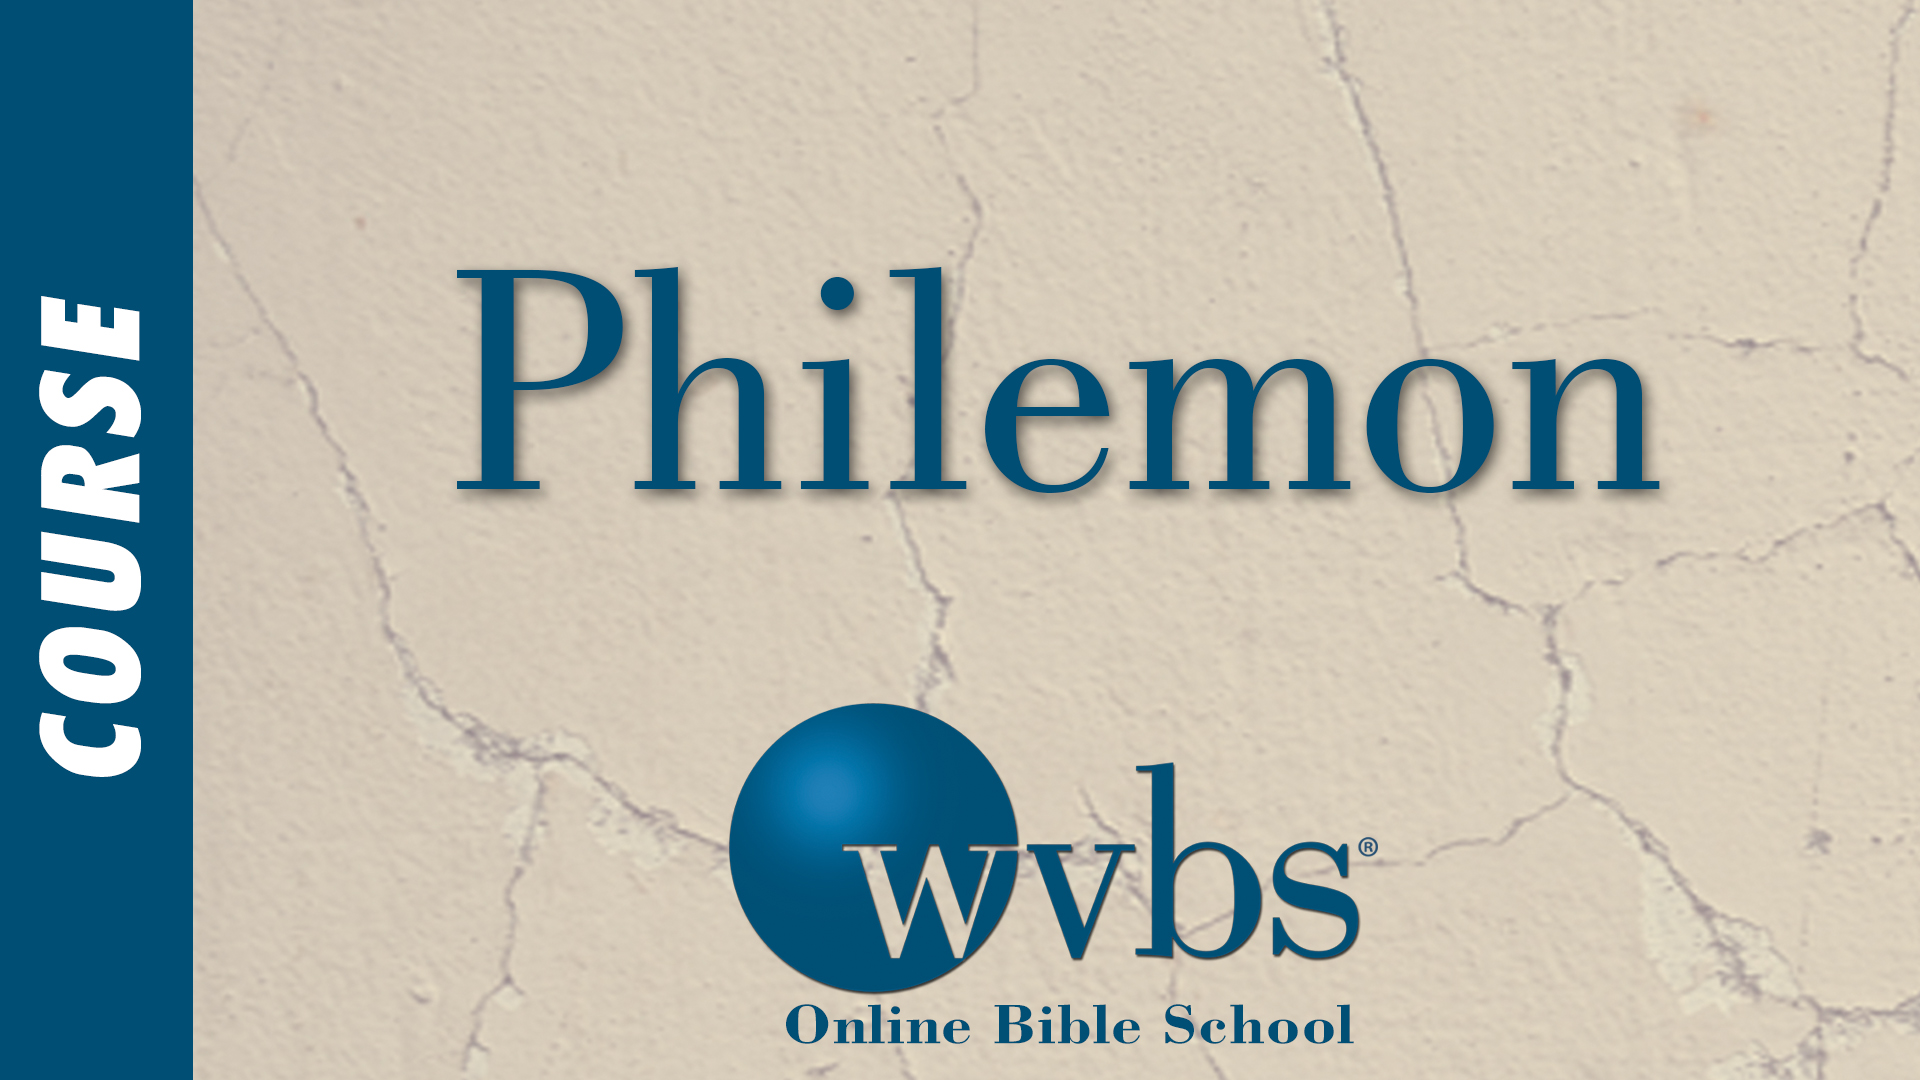 Philemon (Online Bible School)